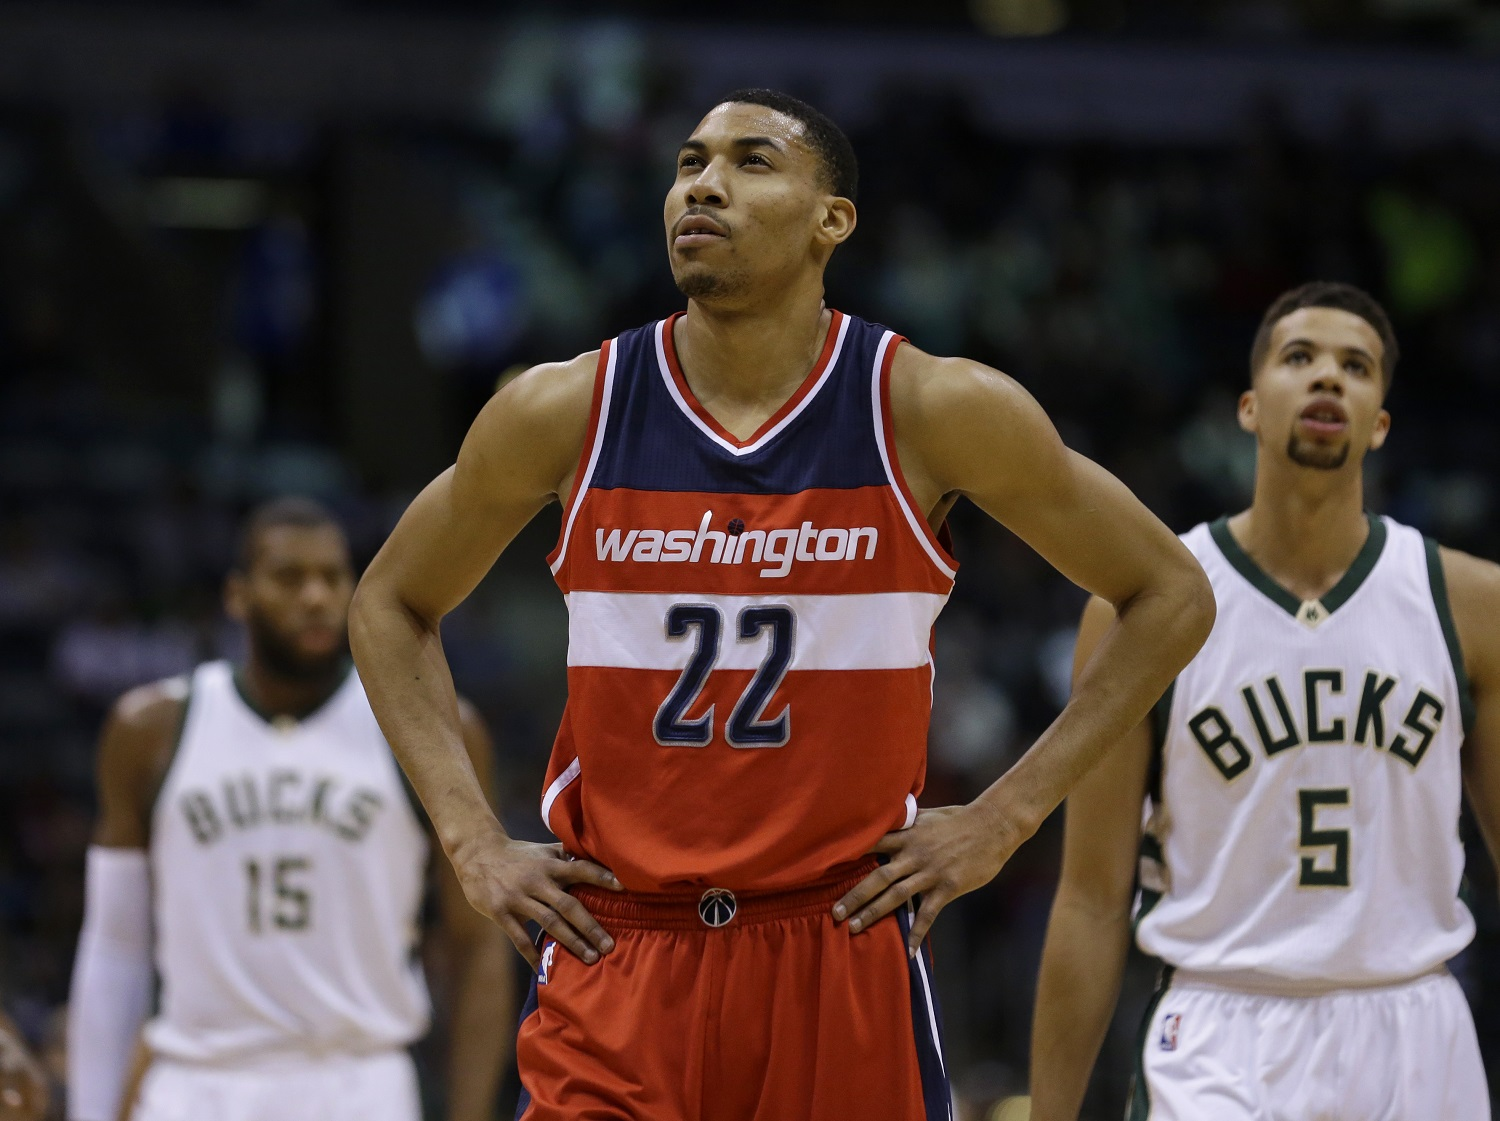 Washington Wizards' Otto Porter Jr. (22) looks up during an NBA basketball game against the Milwaukee Bucks Thursday, Feb. 11, 2016, in Milwaukee. (AP Photo/Aaron Gash)